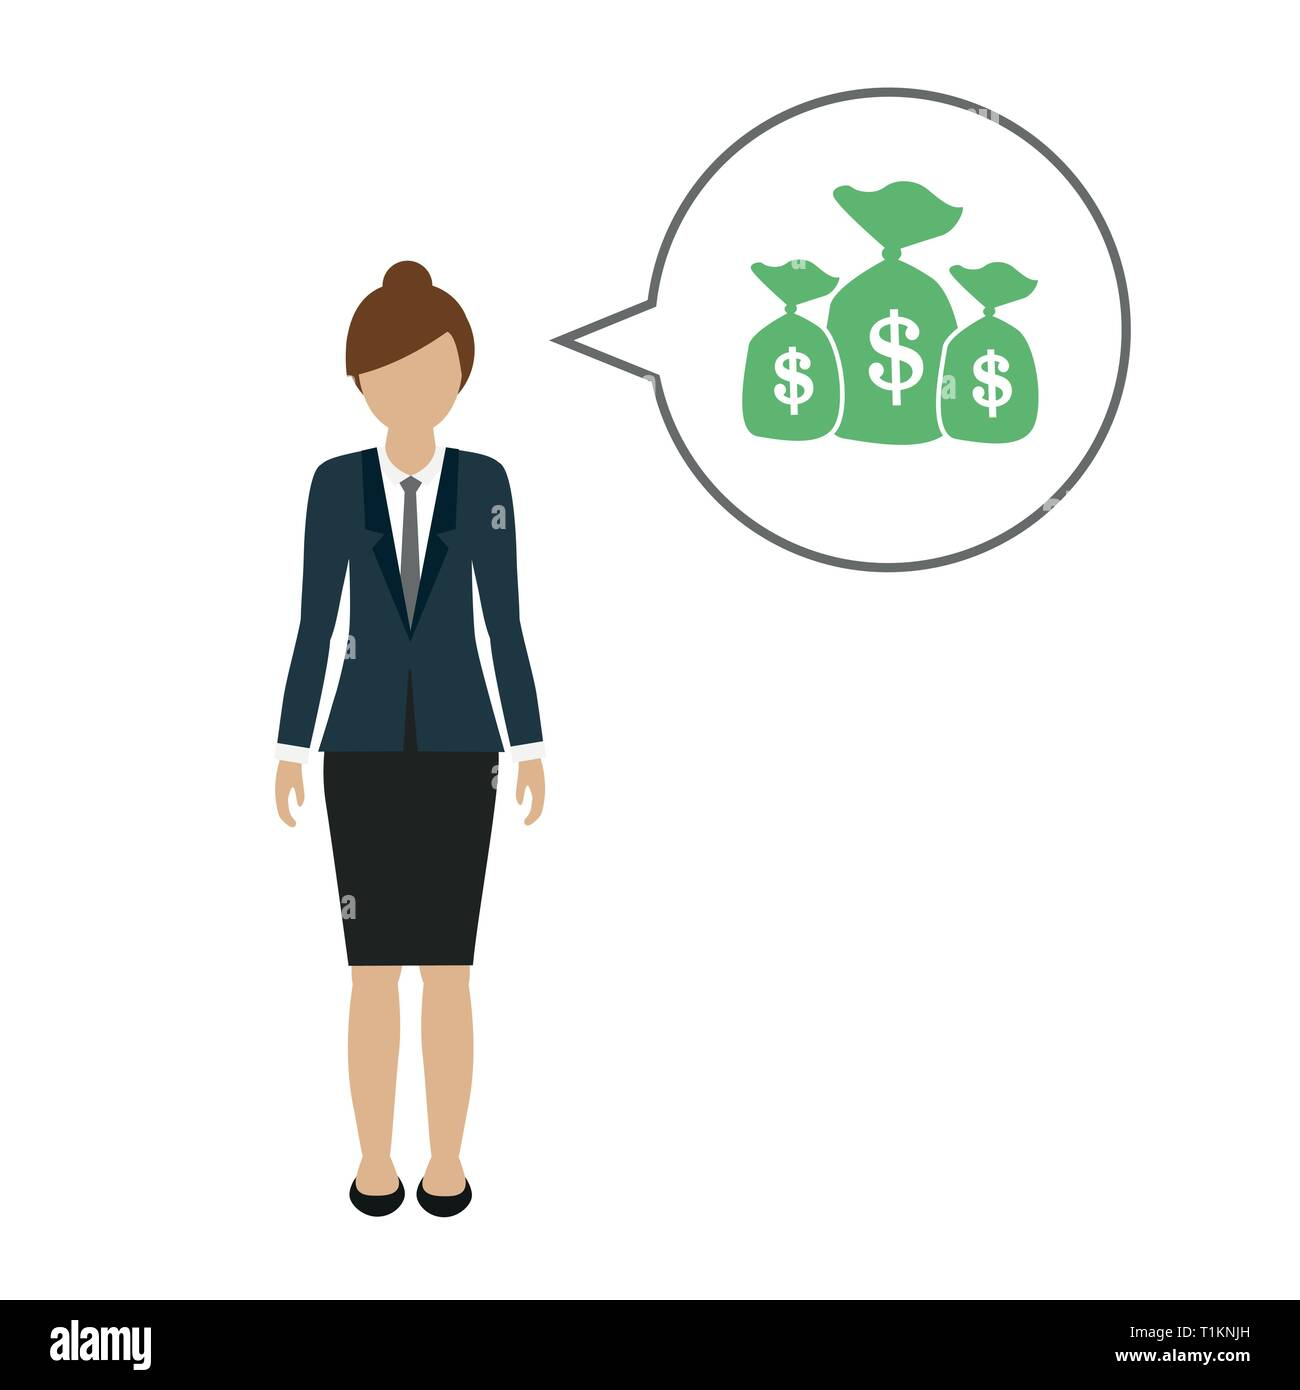 business woman character talks about money dollars vector illustration EPS10 - Stock Vector